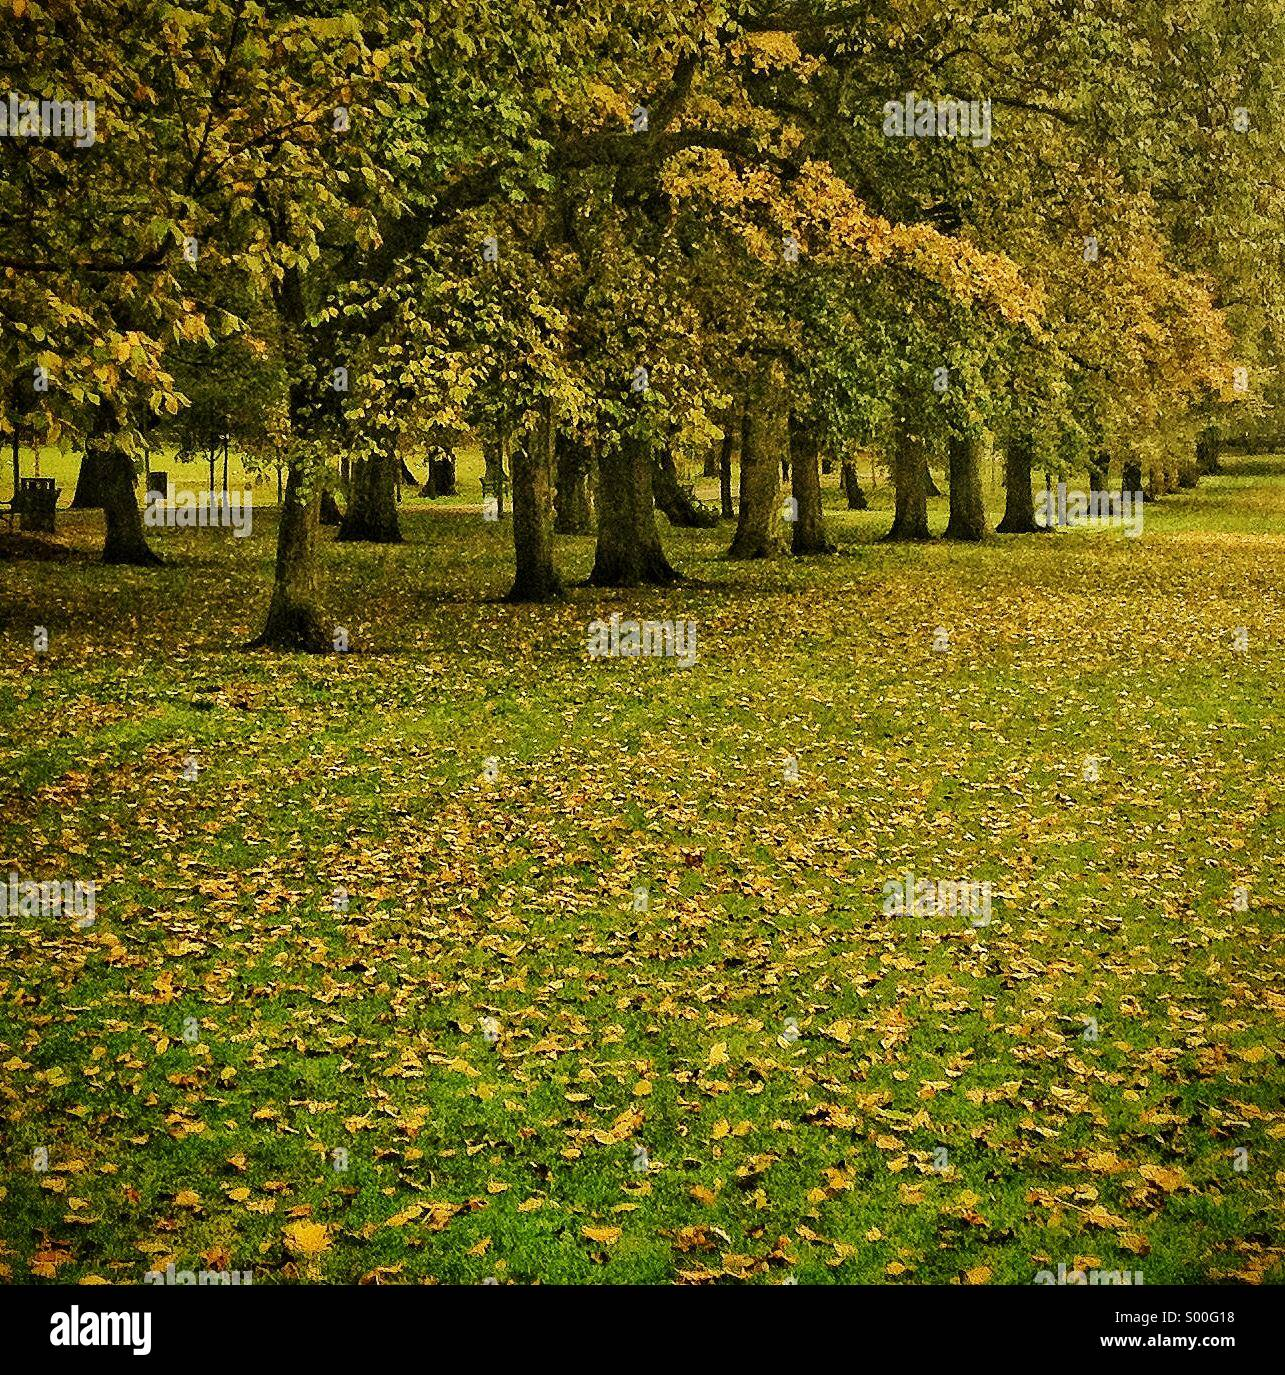 Trees lined path in autumn, Edinburgh, UK - Stock Image